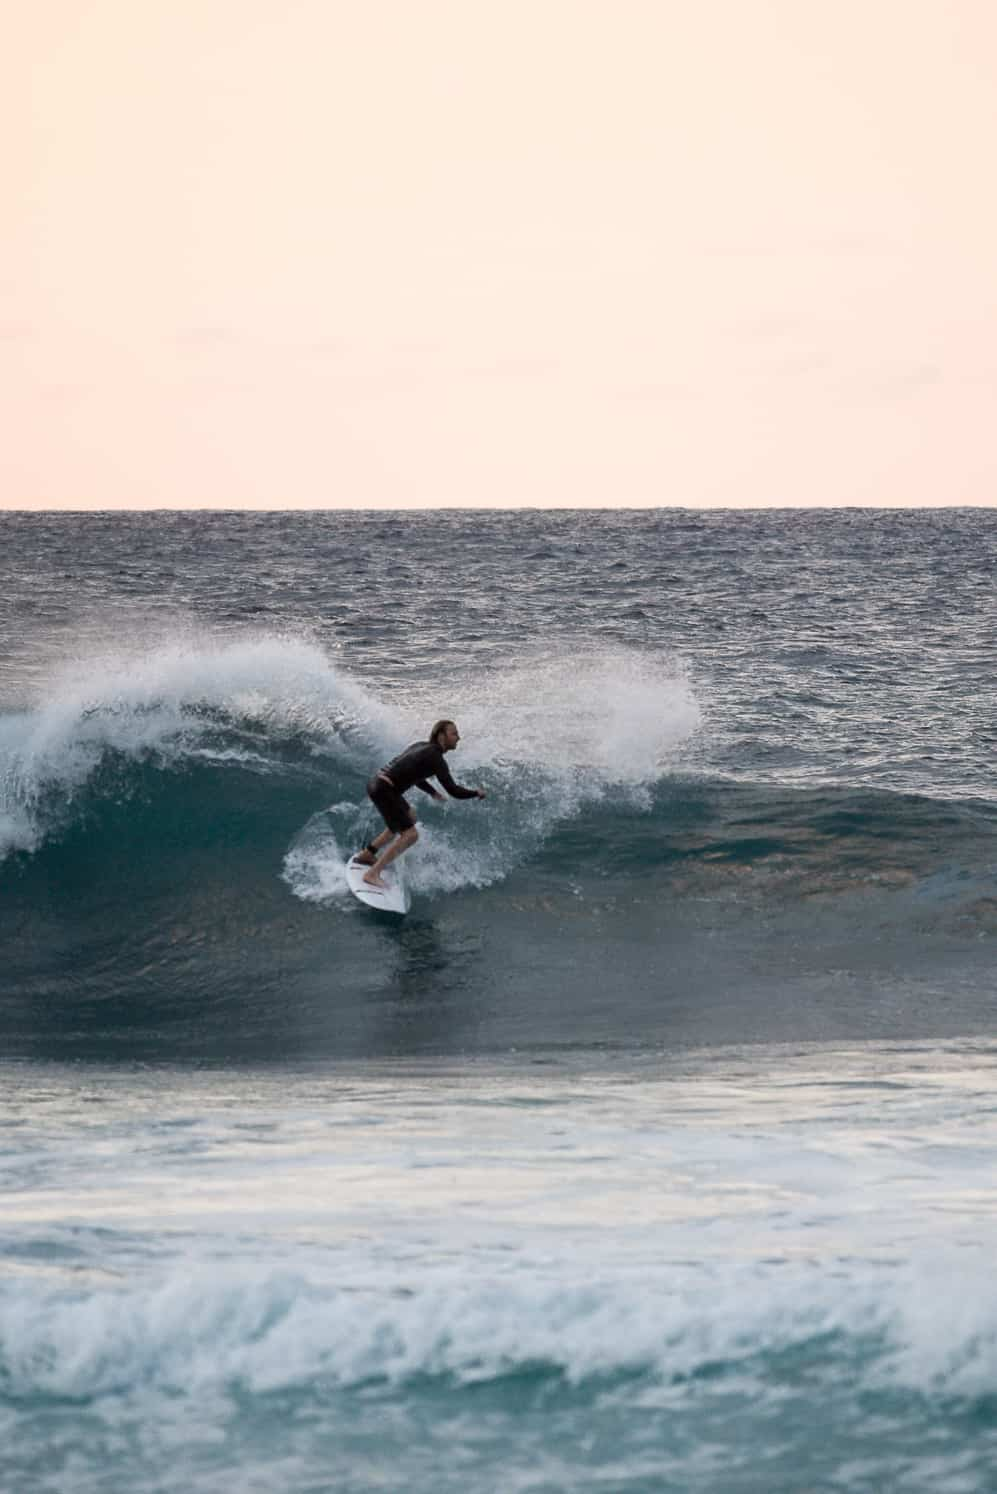 North Shore Oahu surfing